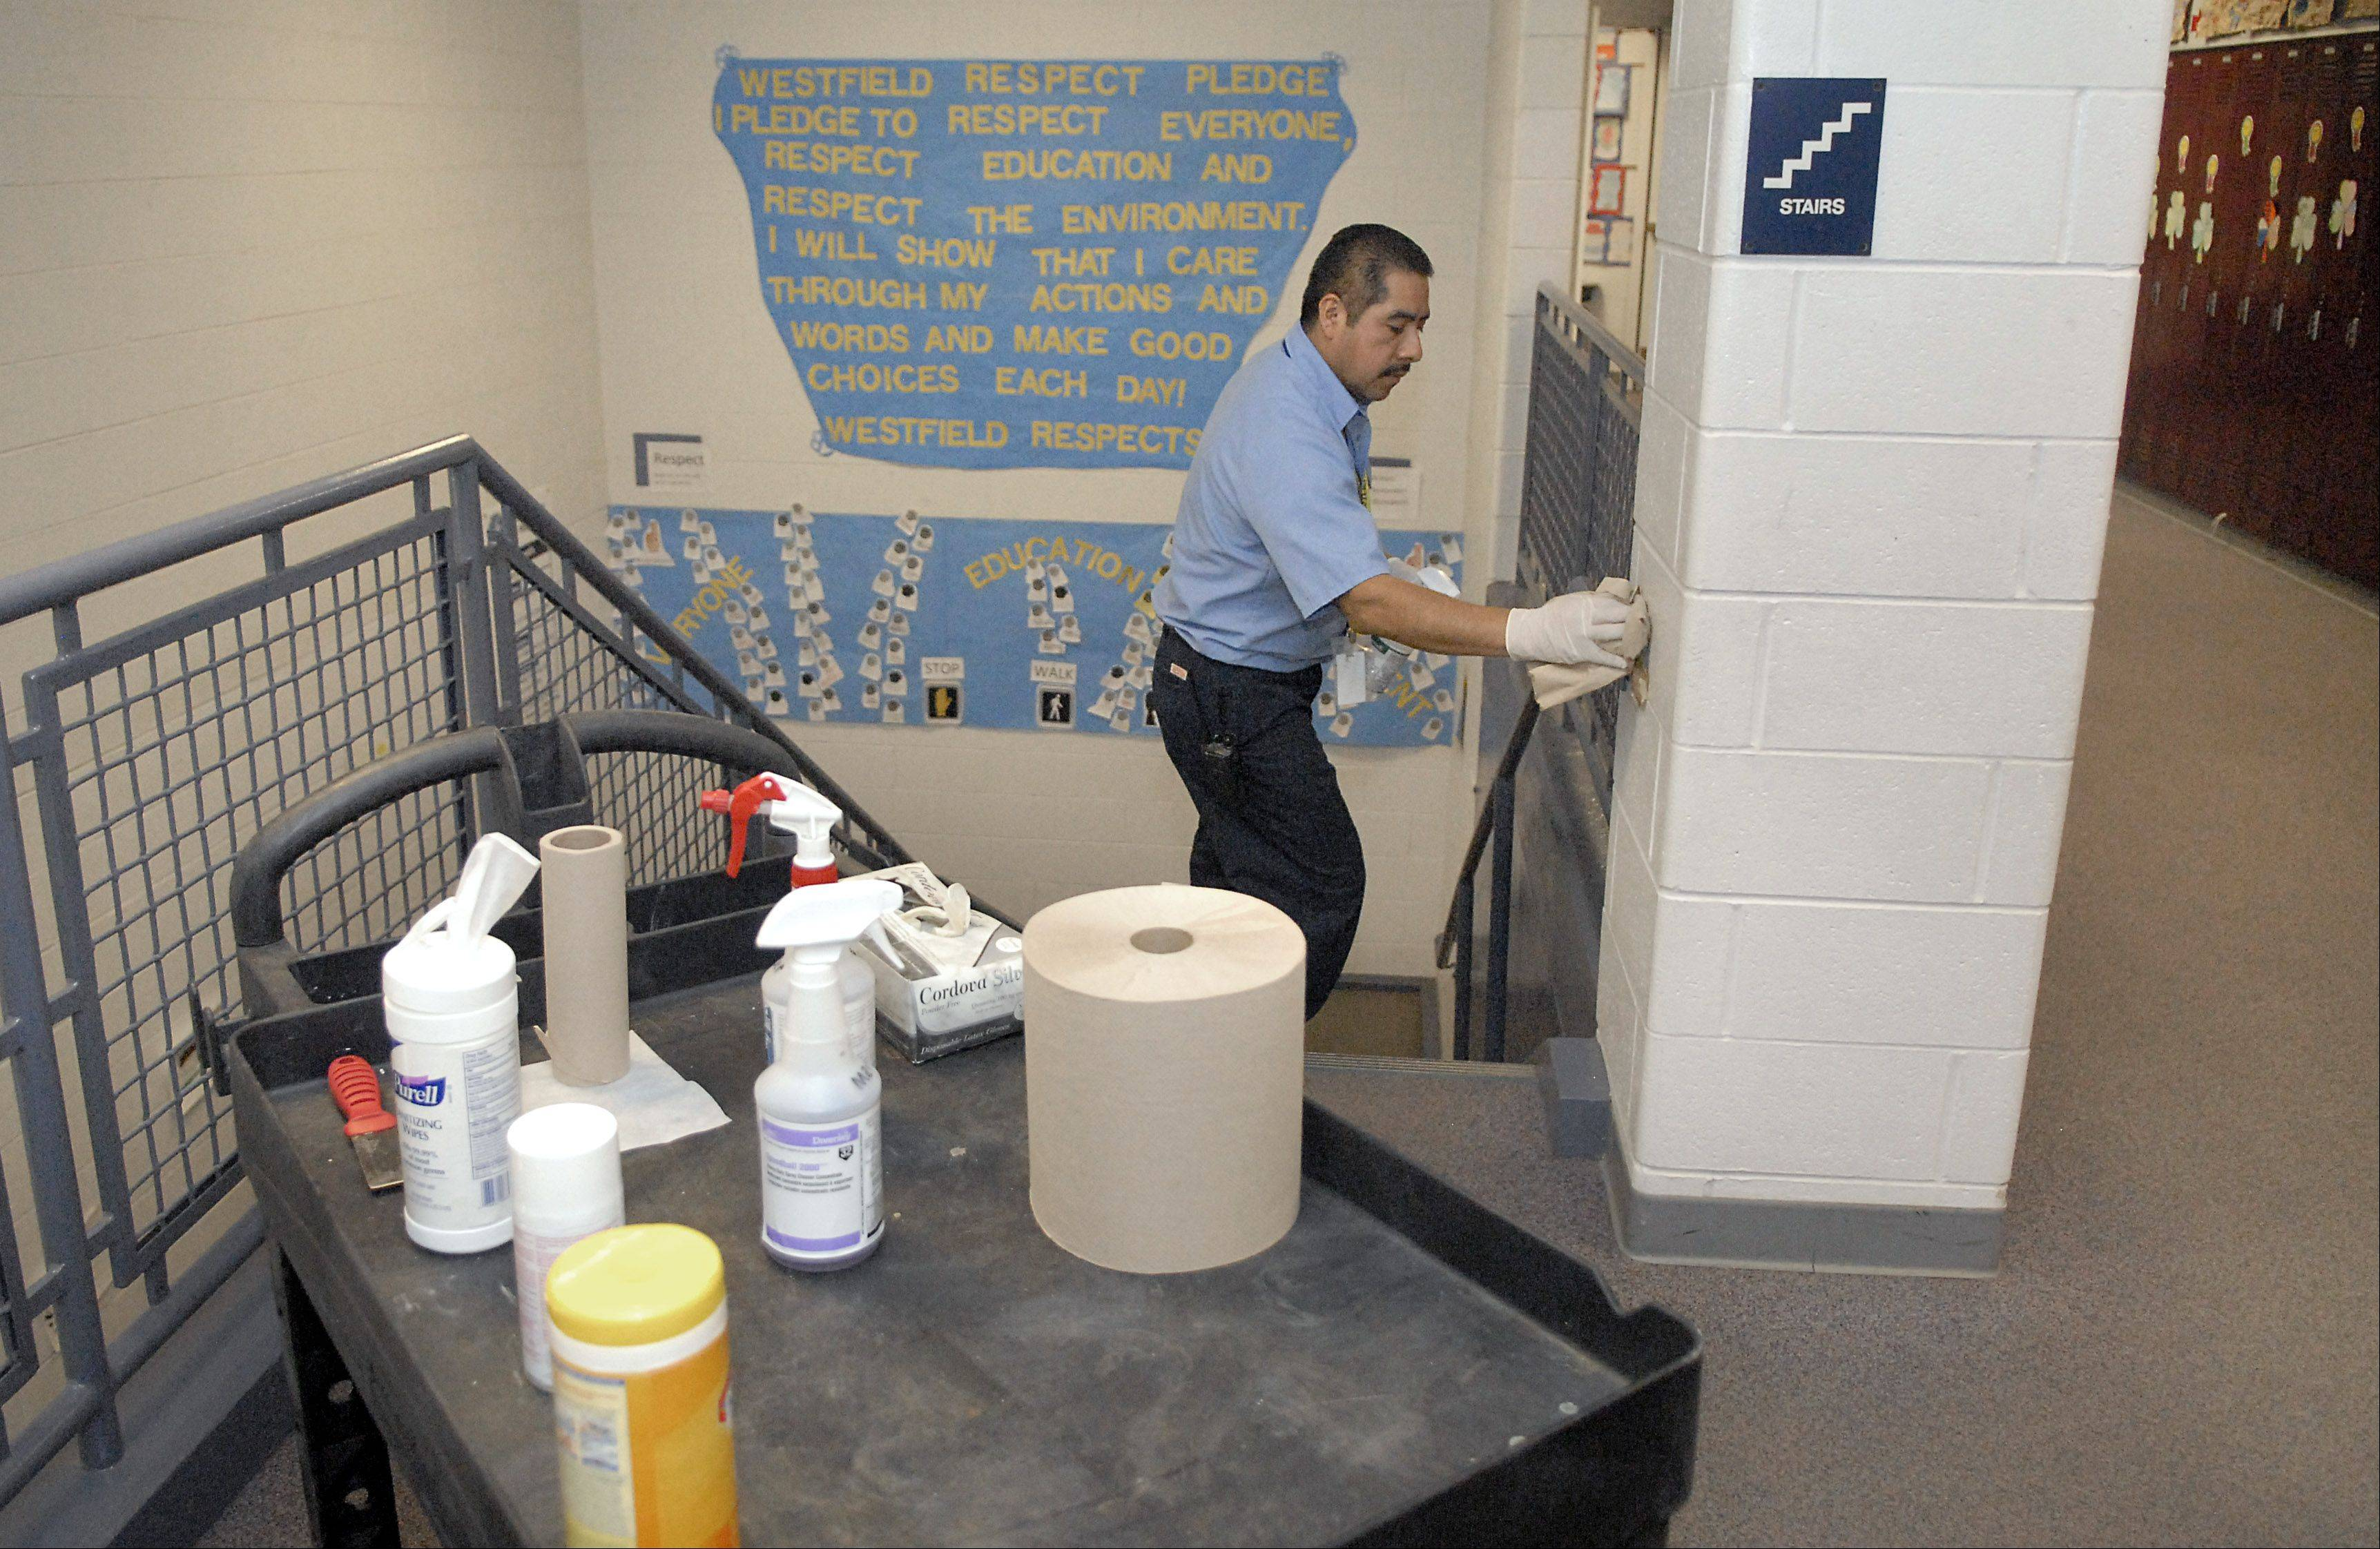 Head custodian Teles Contreras disinfects locker surfaces and handles Friday at Westfield Community School in Algonquin. Norovirus is raging through the school with more than half of the school's elementary population out sick on Friday. Within four hours of cleaning on Friday, Contreras had already gone through three bottles of the disinfectant.